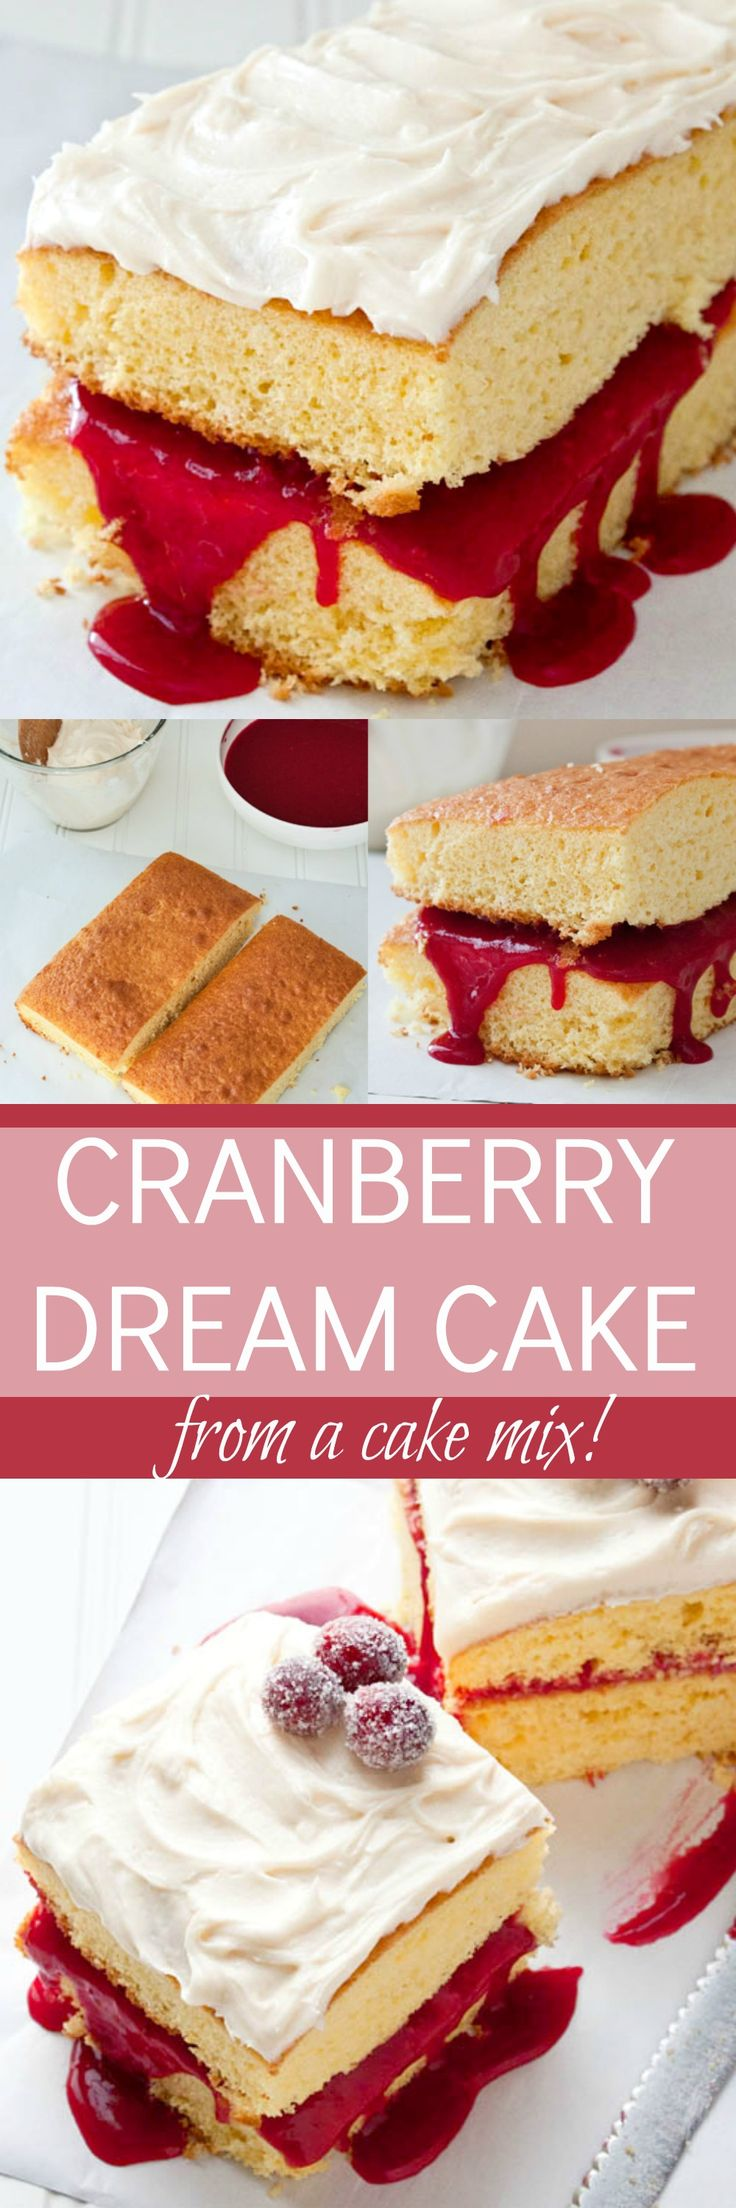 Cake mix cake: cranberry cake using a cake mix! Easy homemade cranberry curd and fluffy dreamy frosting!